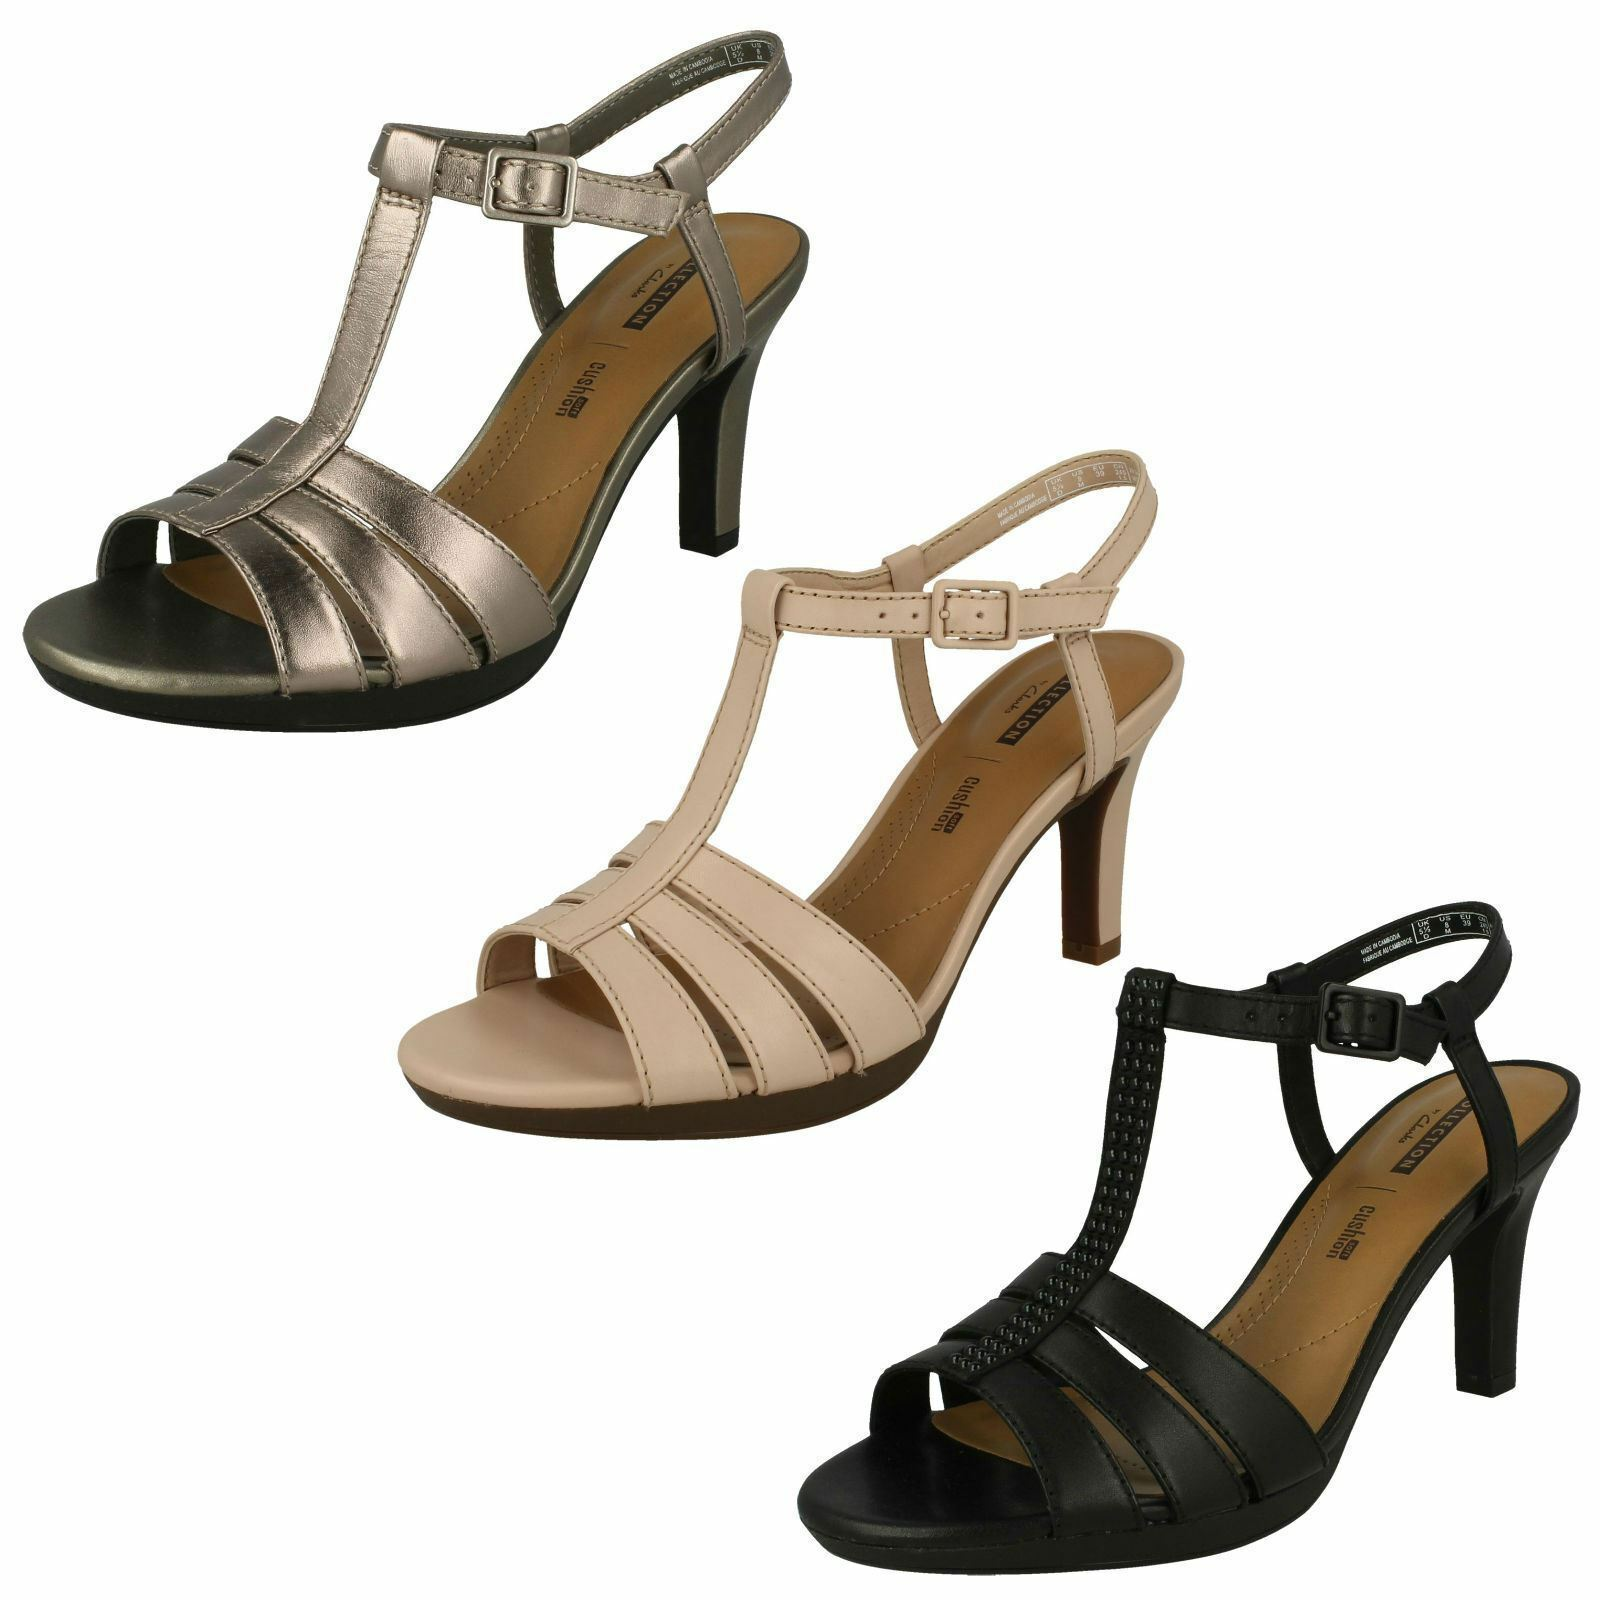 LADIES CLARKS LEATHER SLINGBACK HEEL STRAPPY SMART SANDALS Schuhe ADRIEL TEVIS